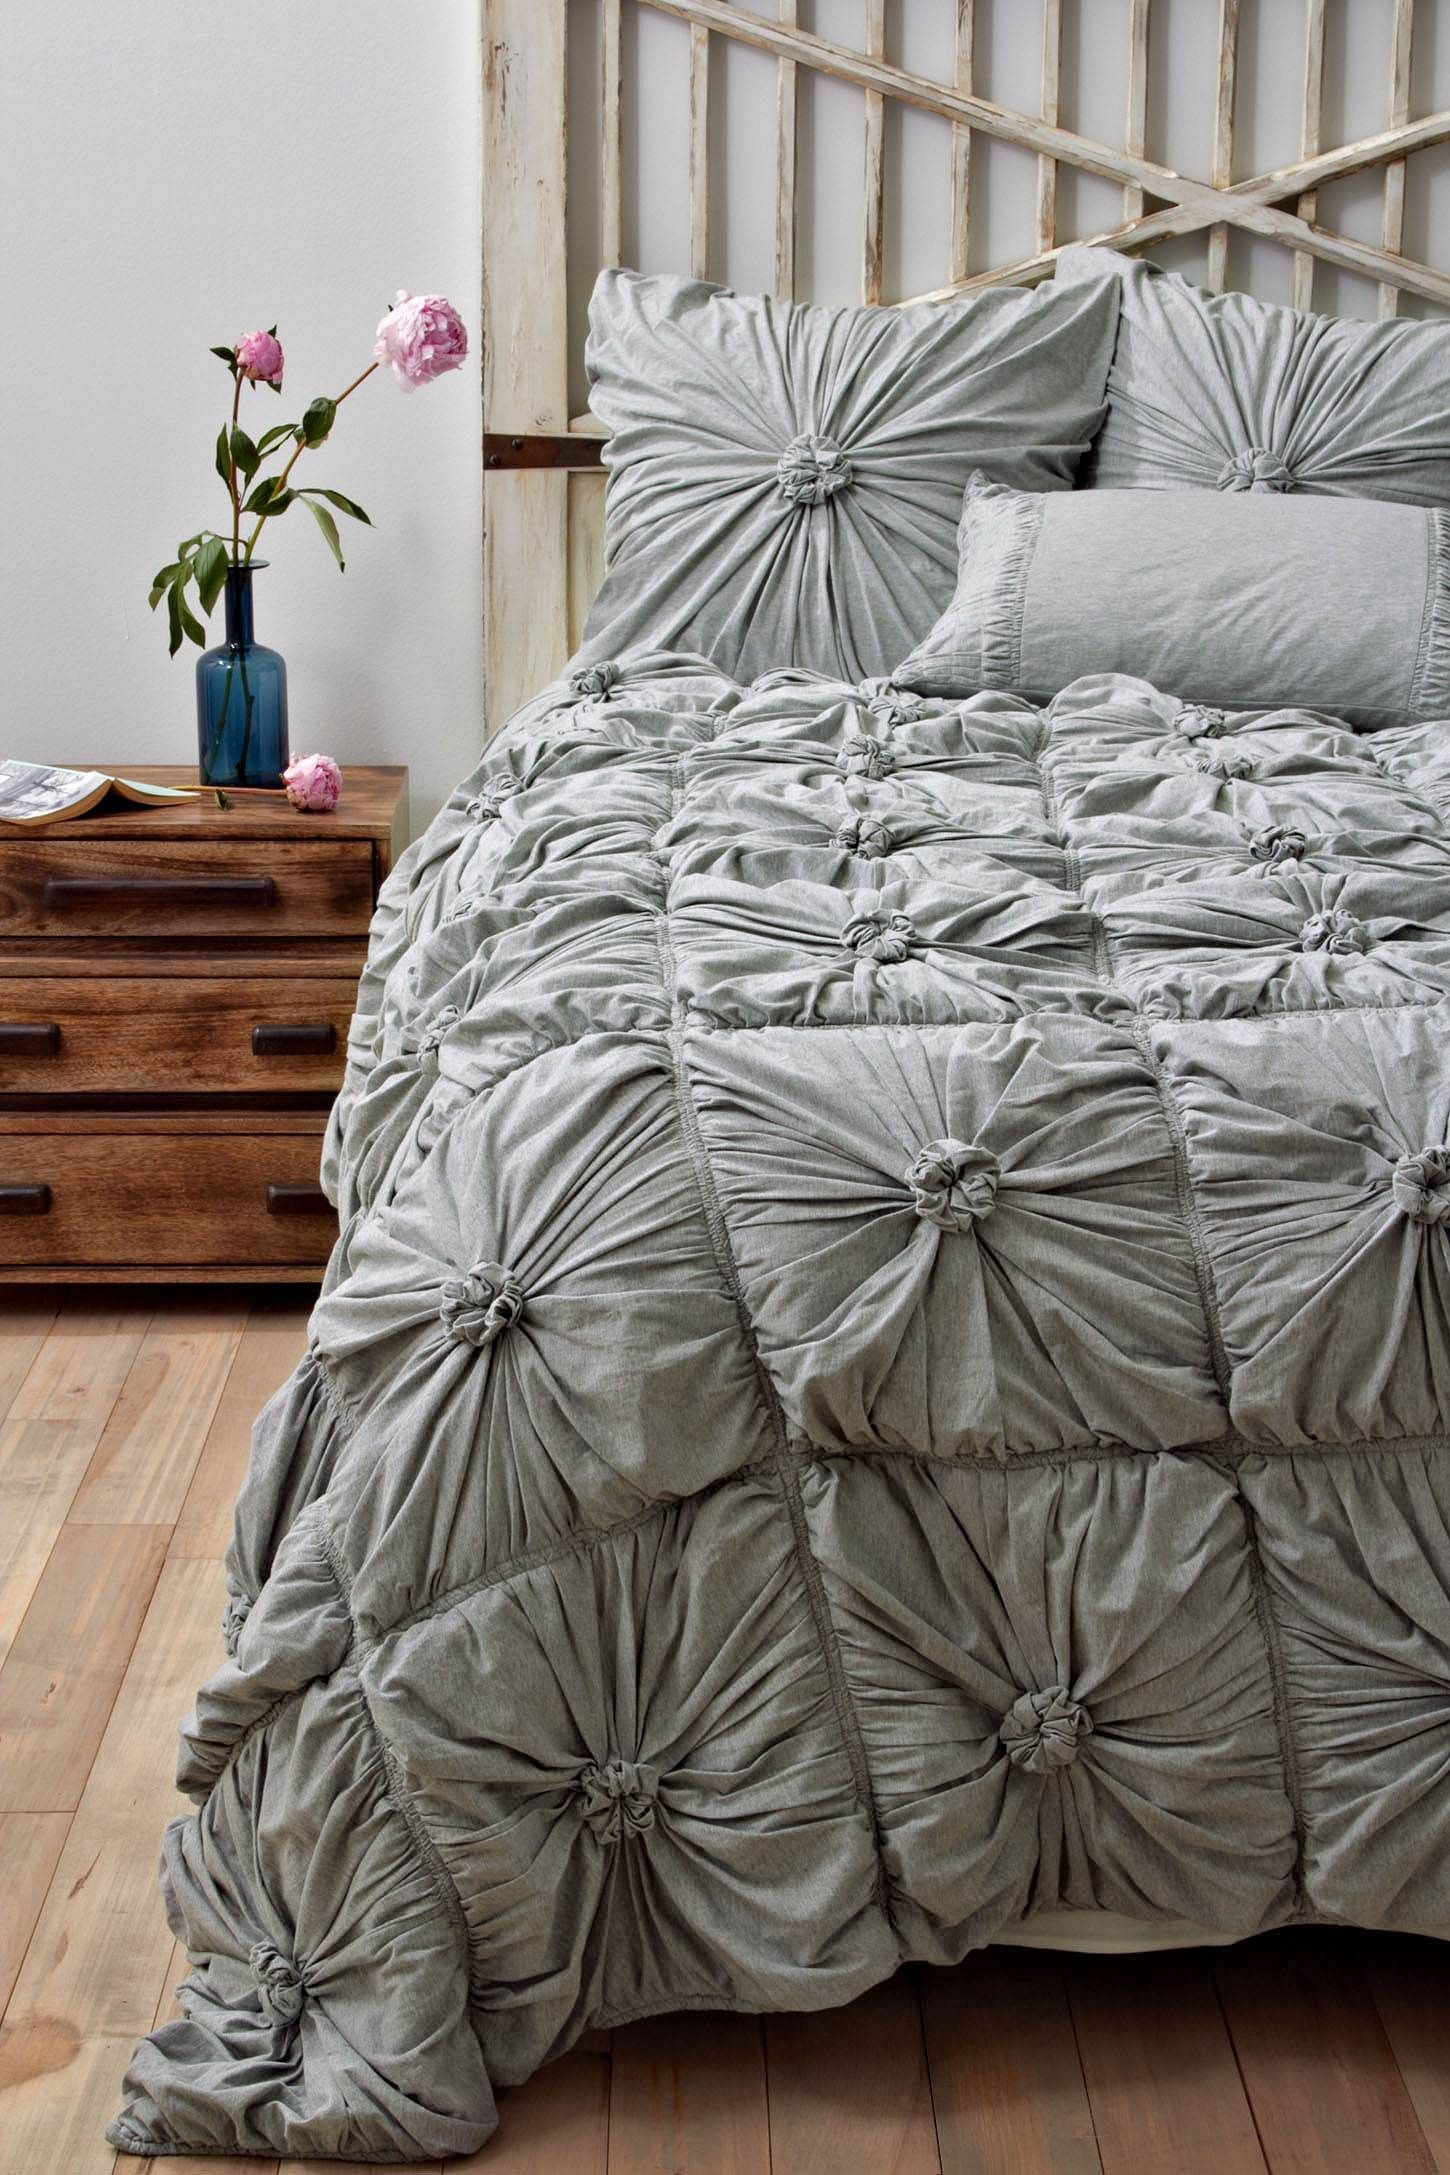 Rosette Bedding Anthropologie Home Decor Home Bedroom Anthropologie Bedding